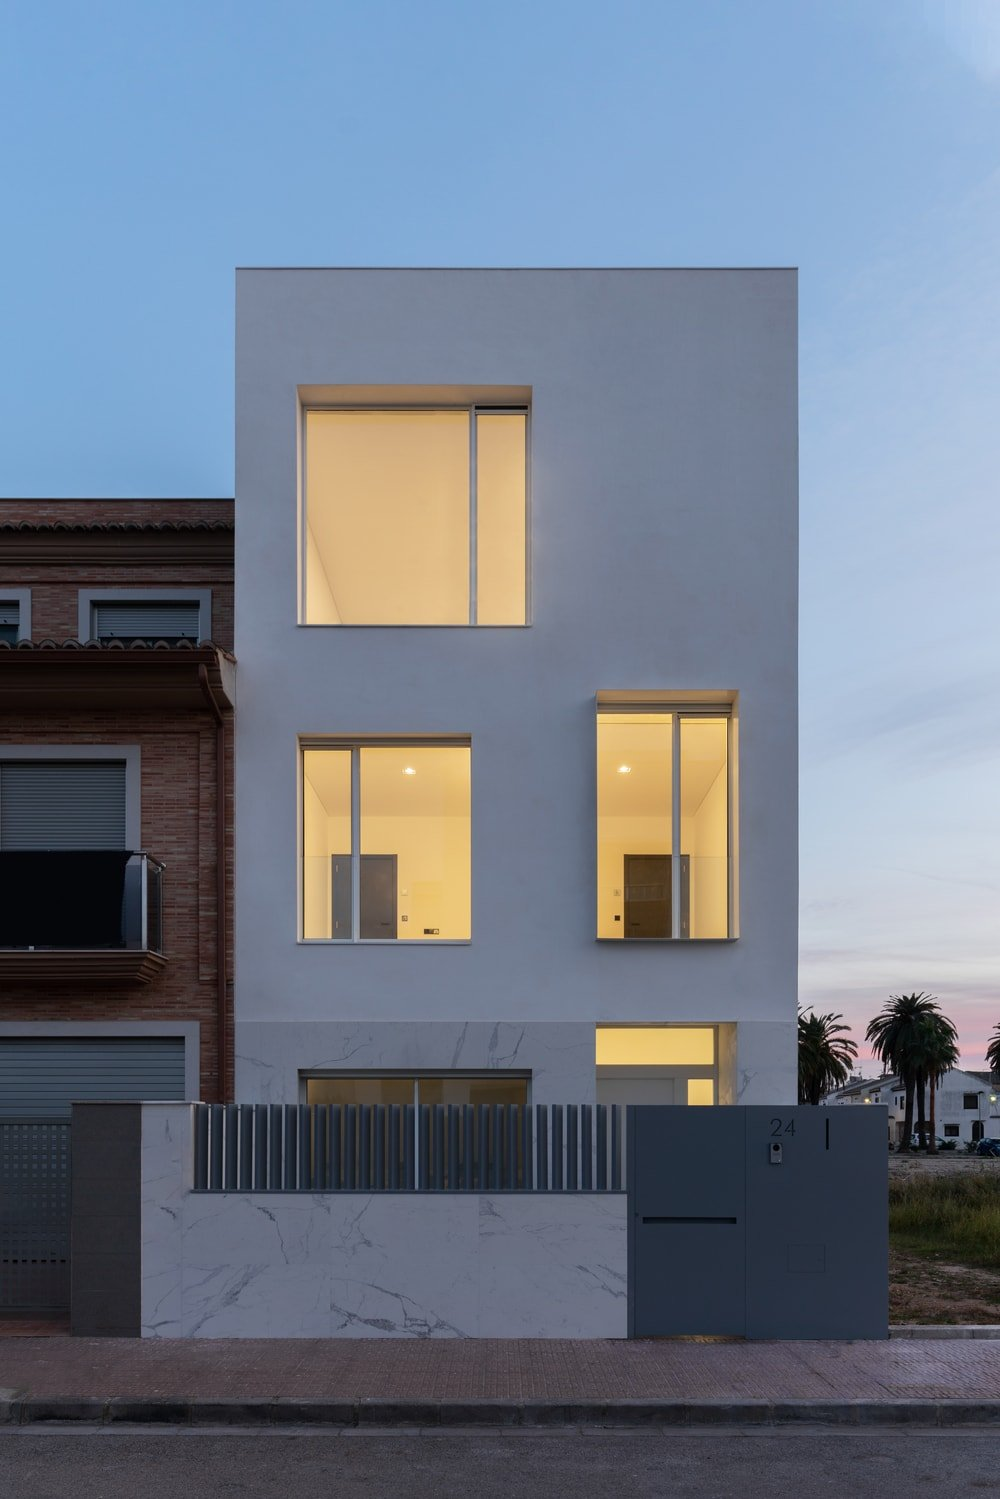 The large windows of the house glow warmly from the interior lights that also give a glimpse of the interior walls.